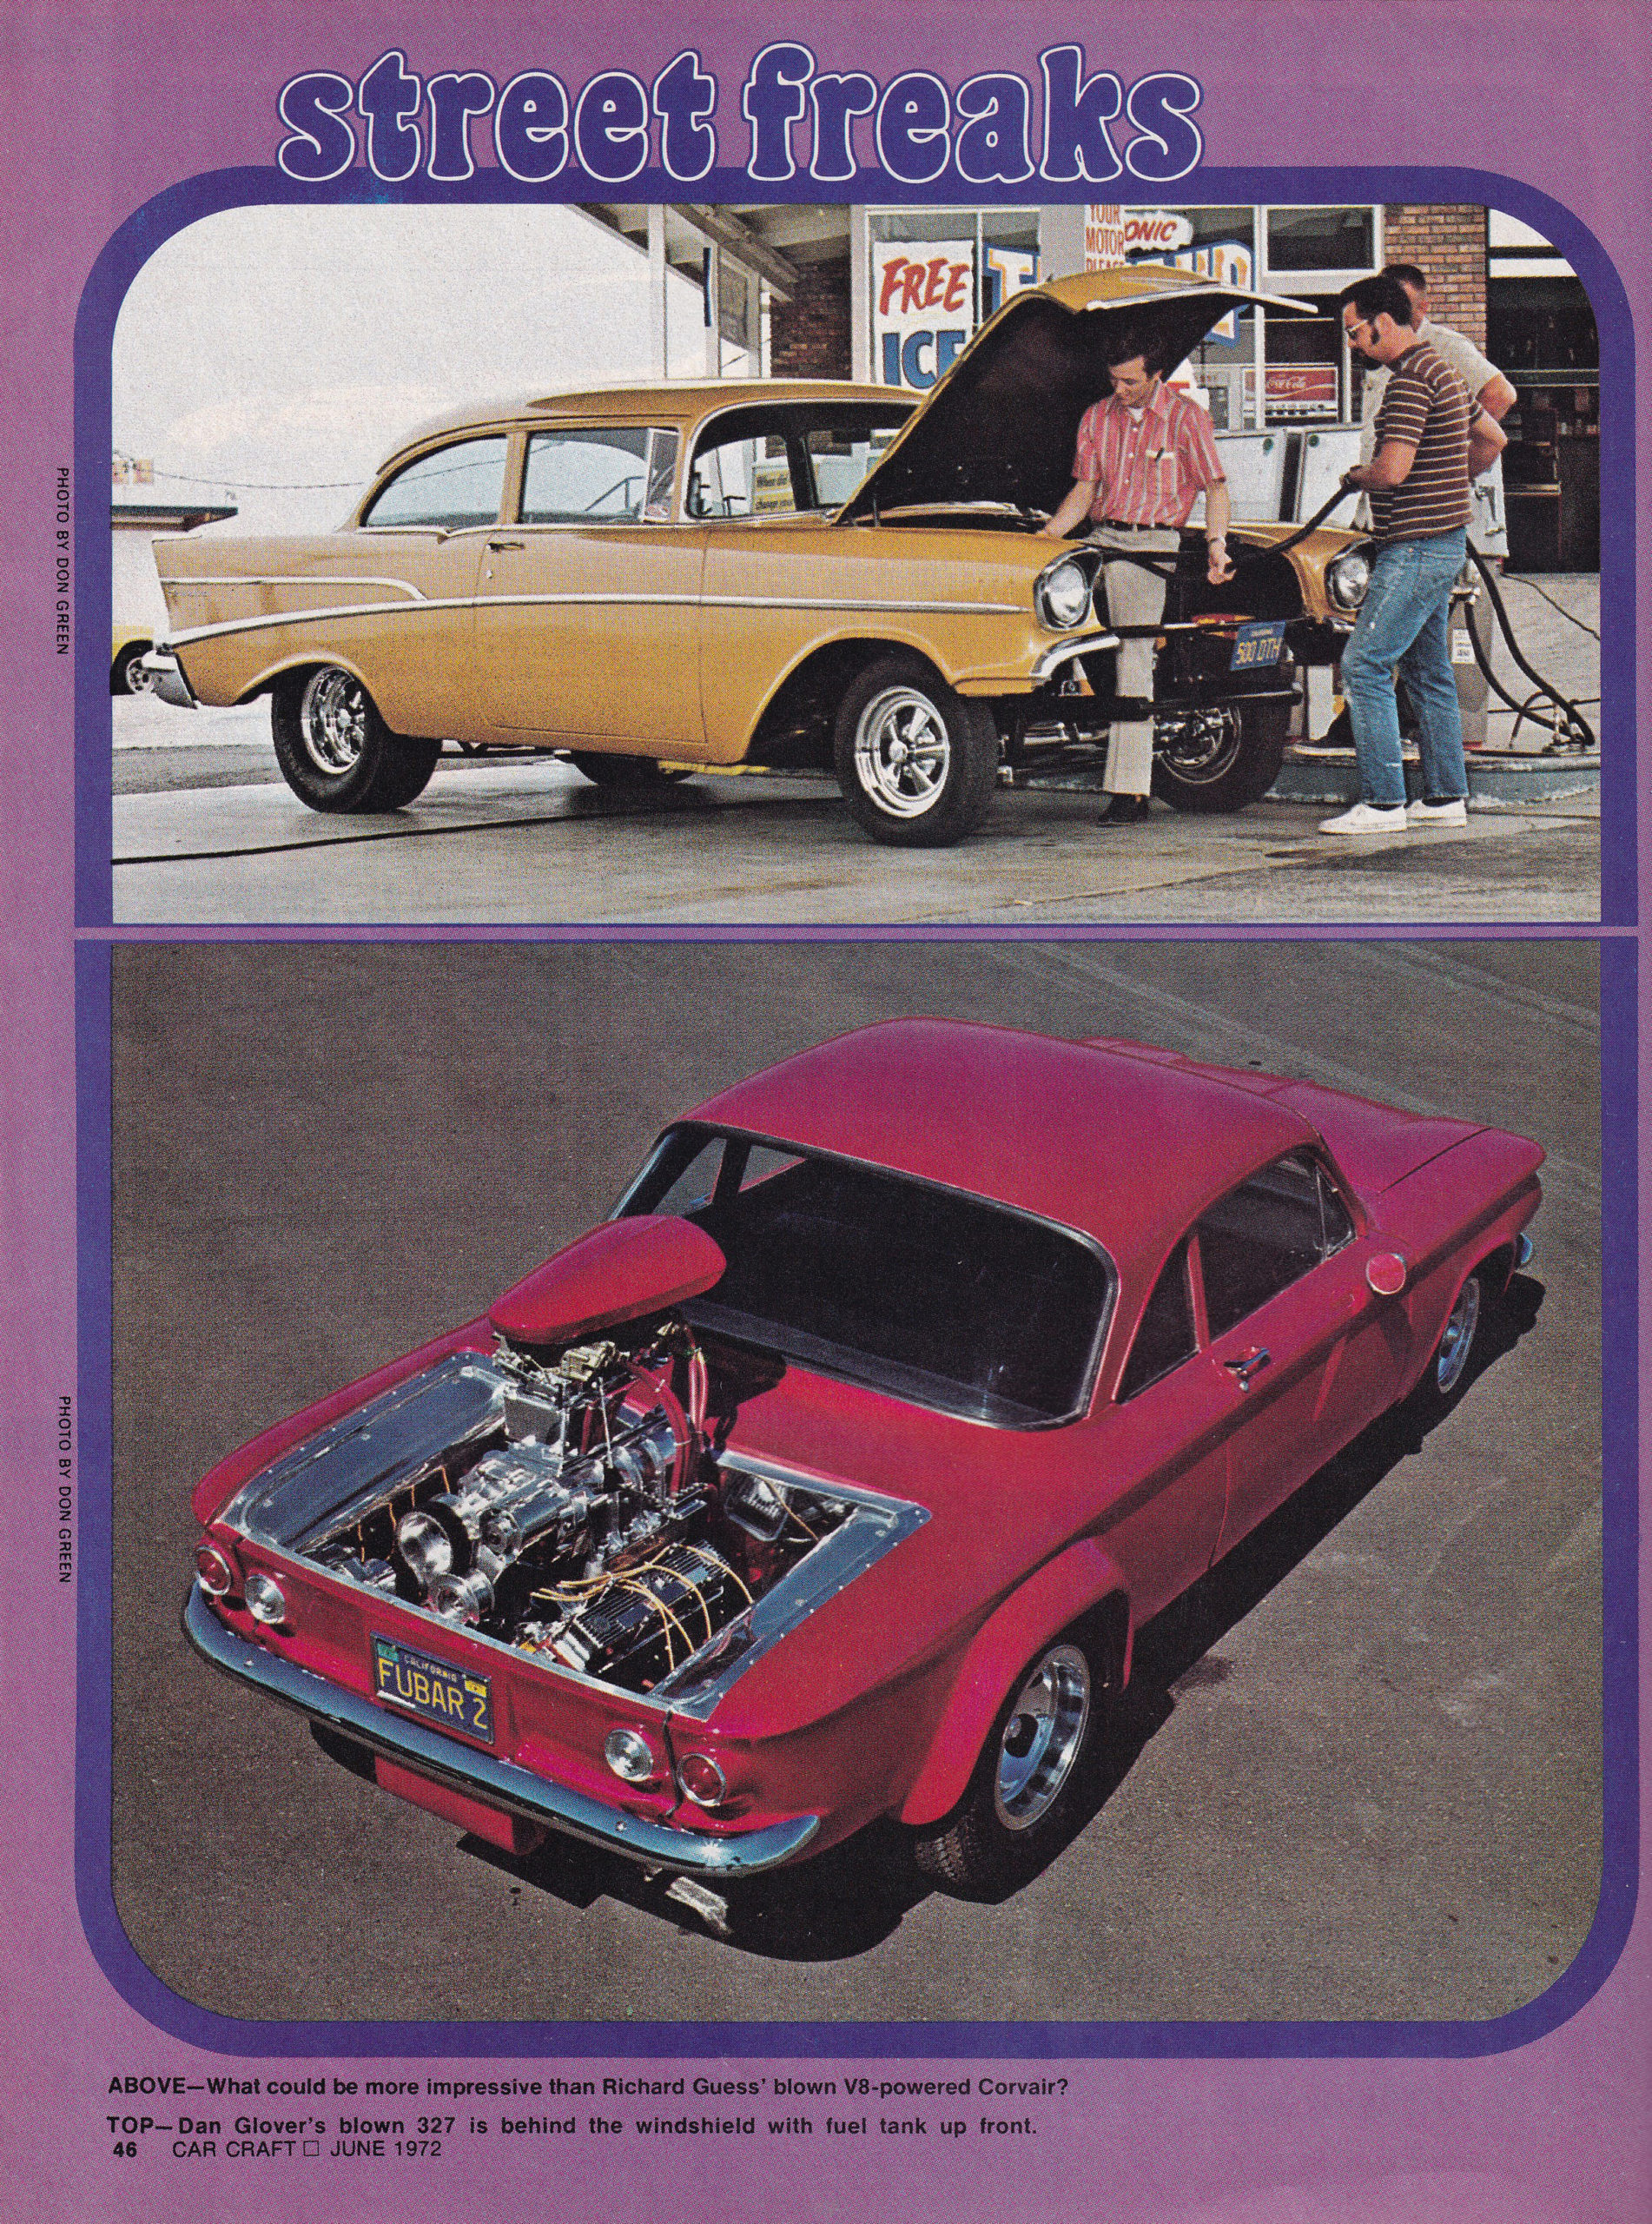 Street Freaks section from June 1972 issue of Car Craft, page 8.